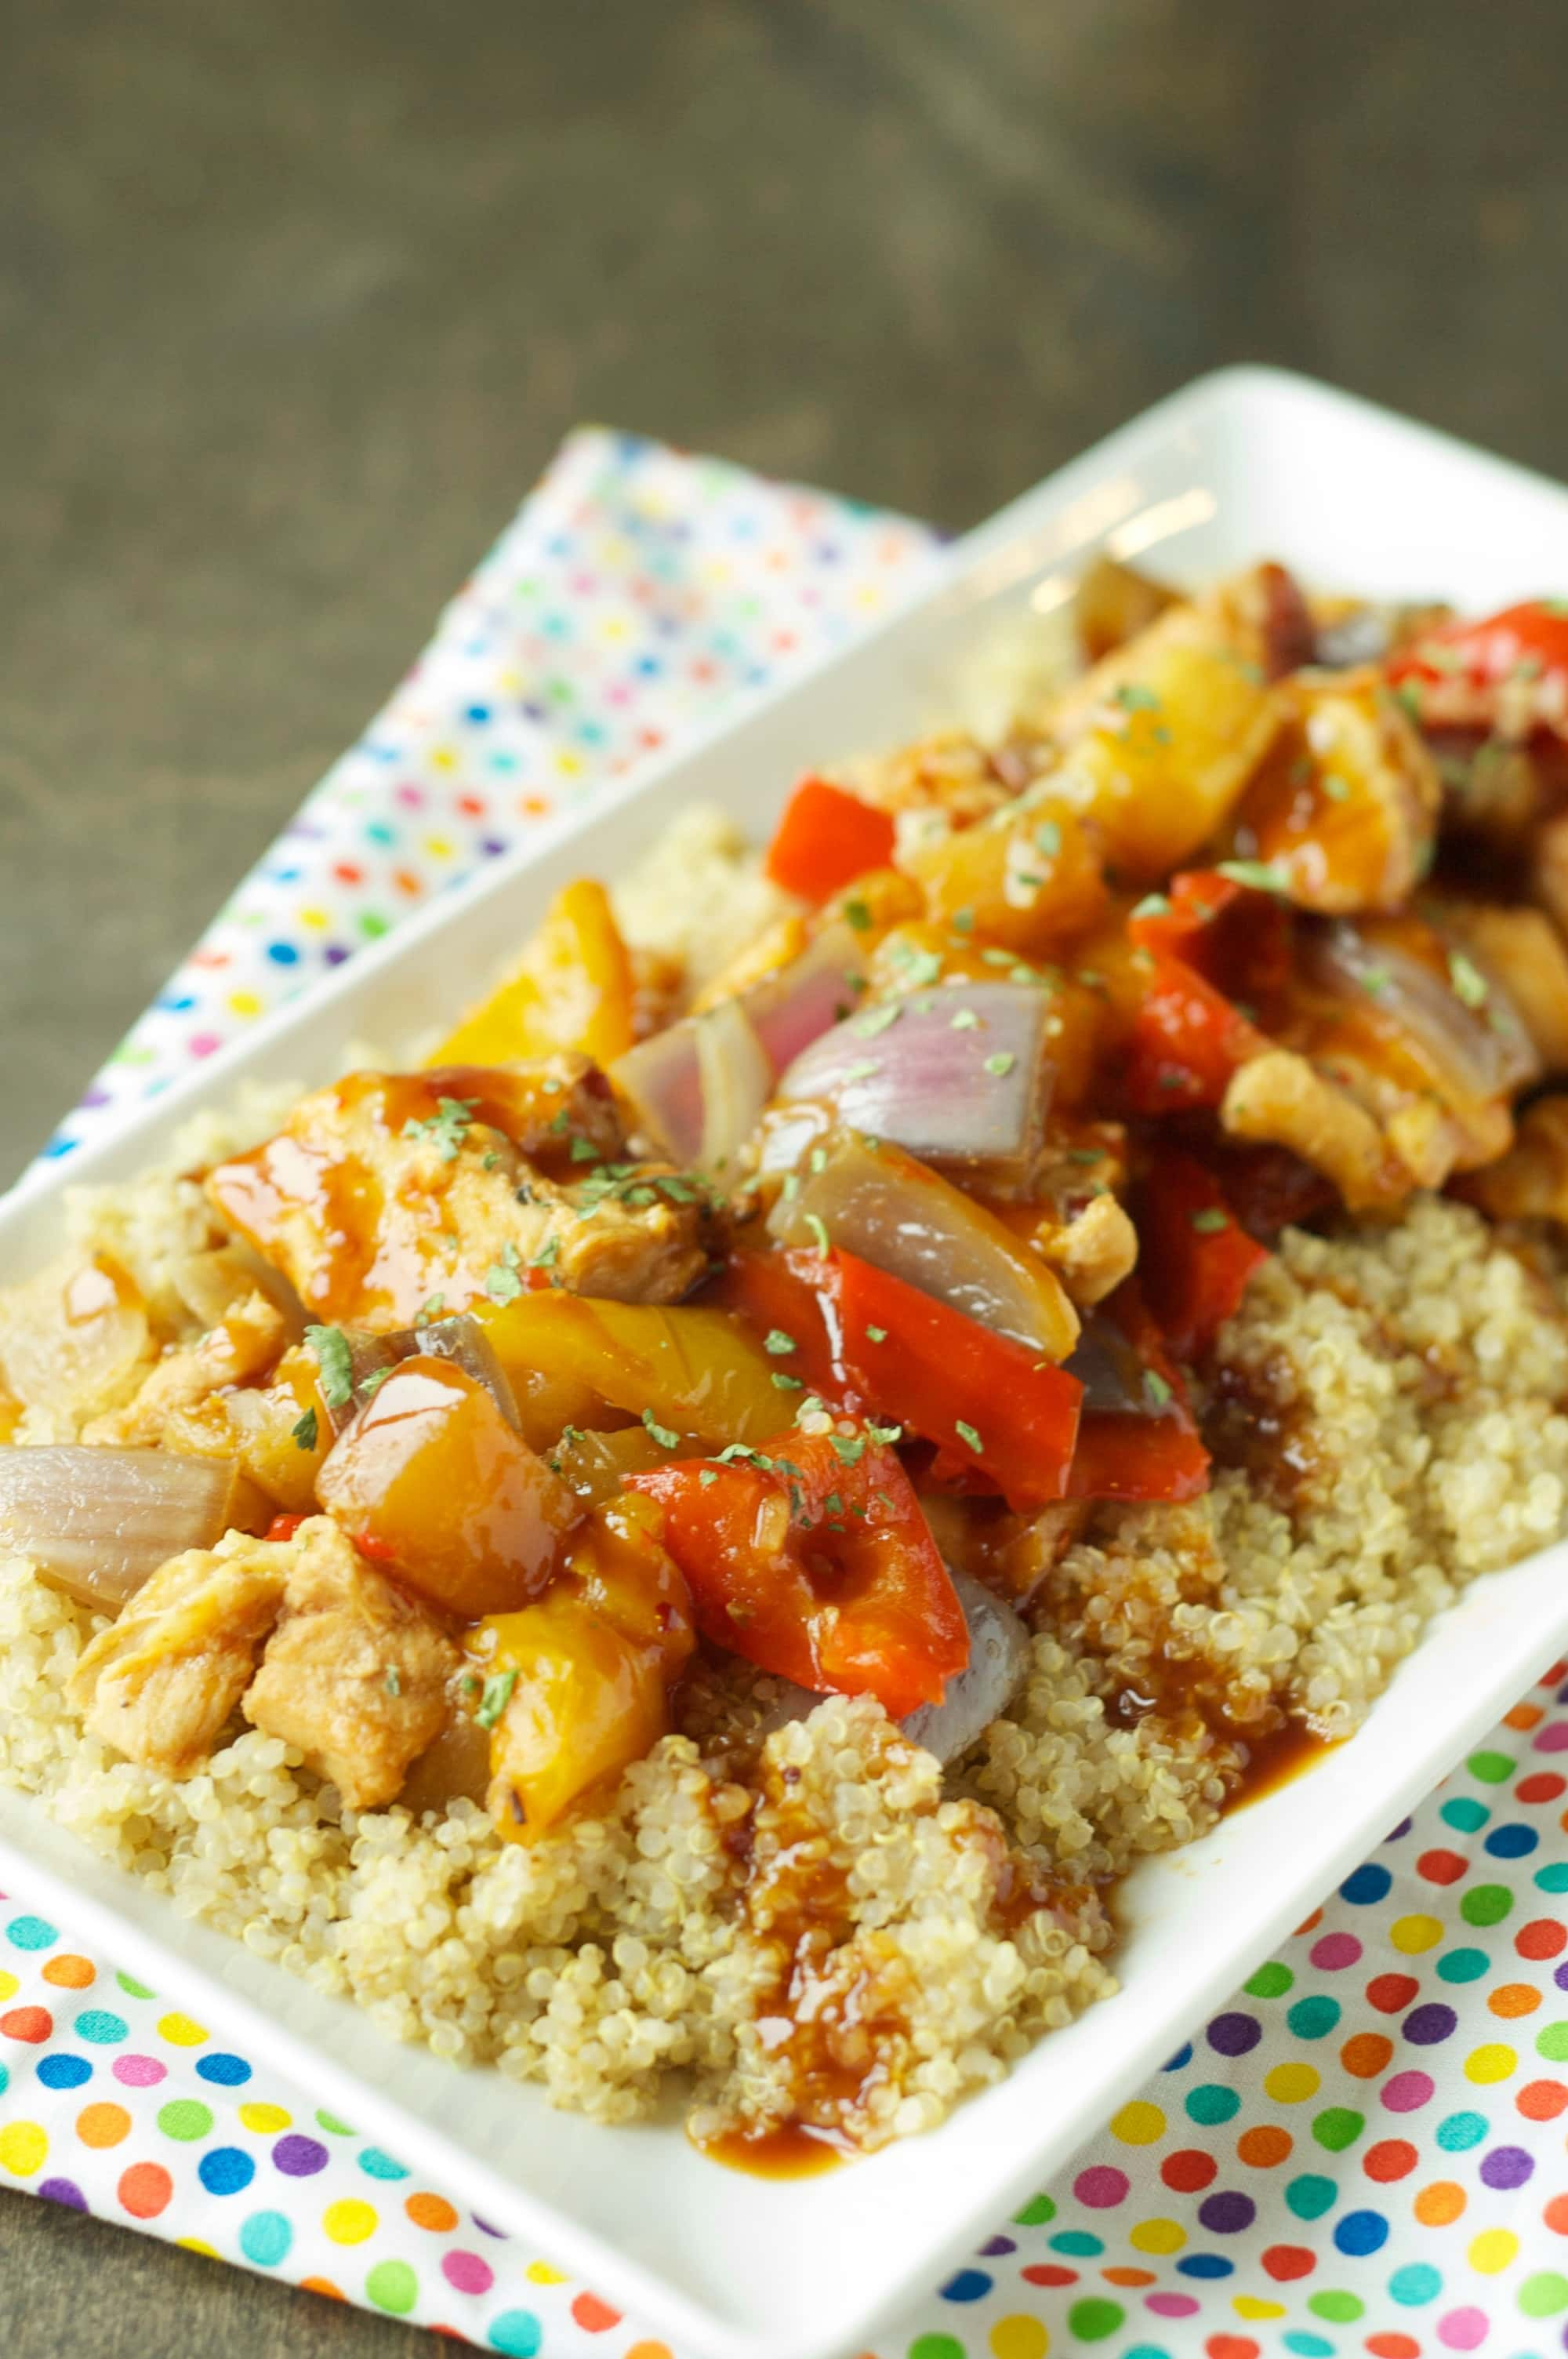 Slow Cooker Pineapple Chicken and Veggies